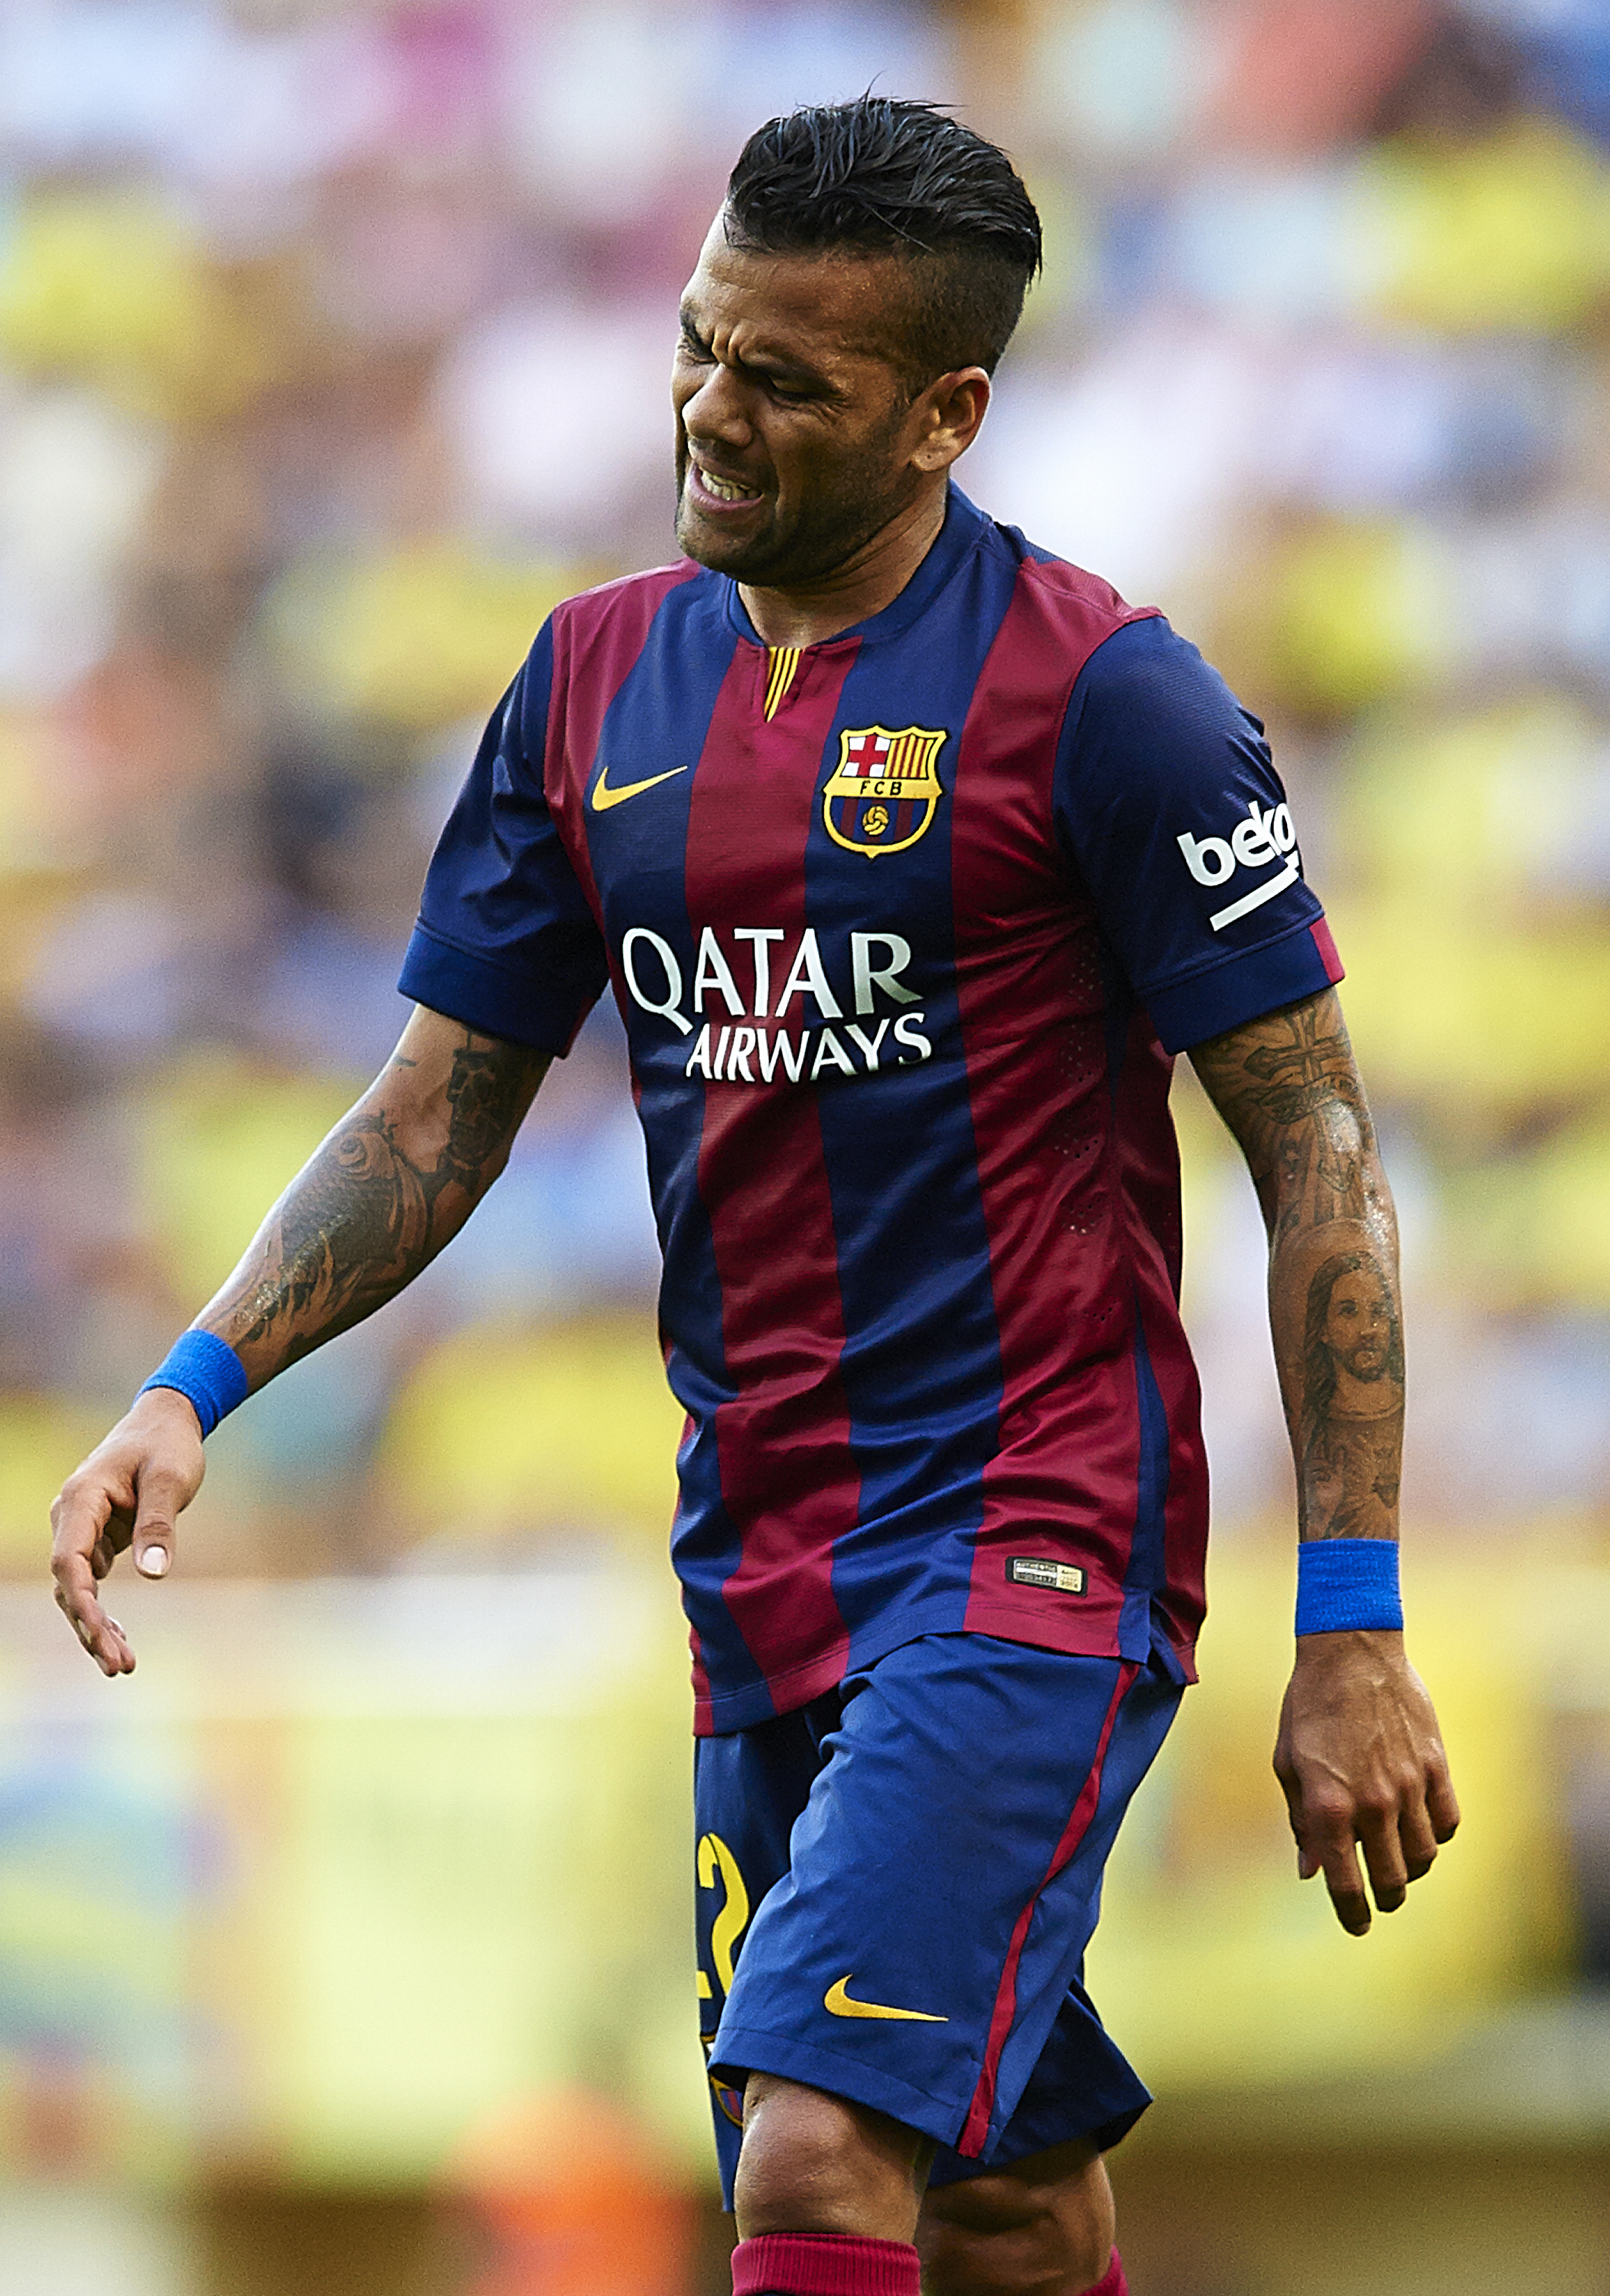 Manchester United and Arsenal fans look away: Error from Barcelona's Dani Alves gifts Malaga early lead in La Liga clash